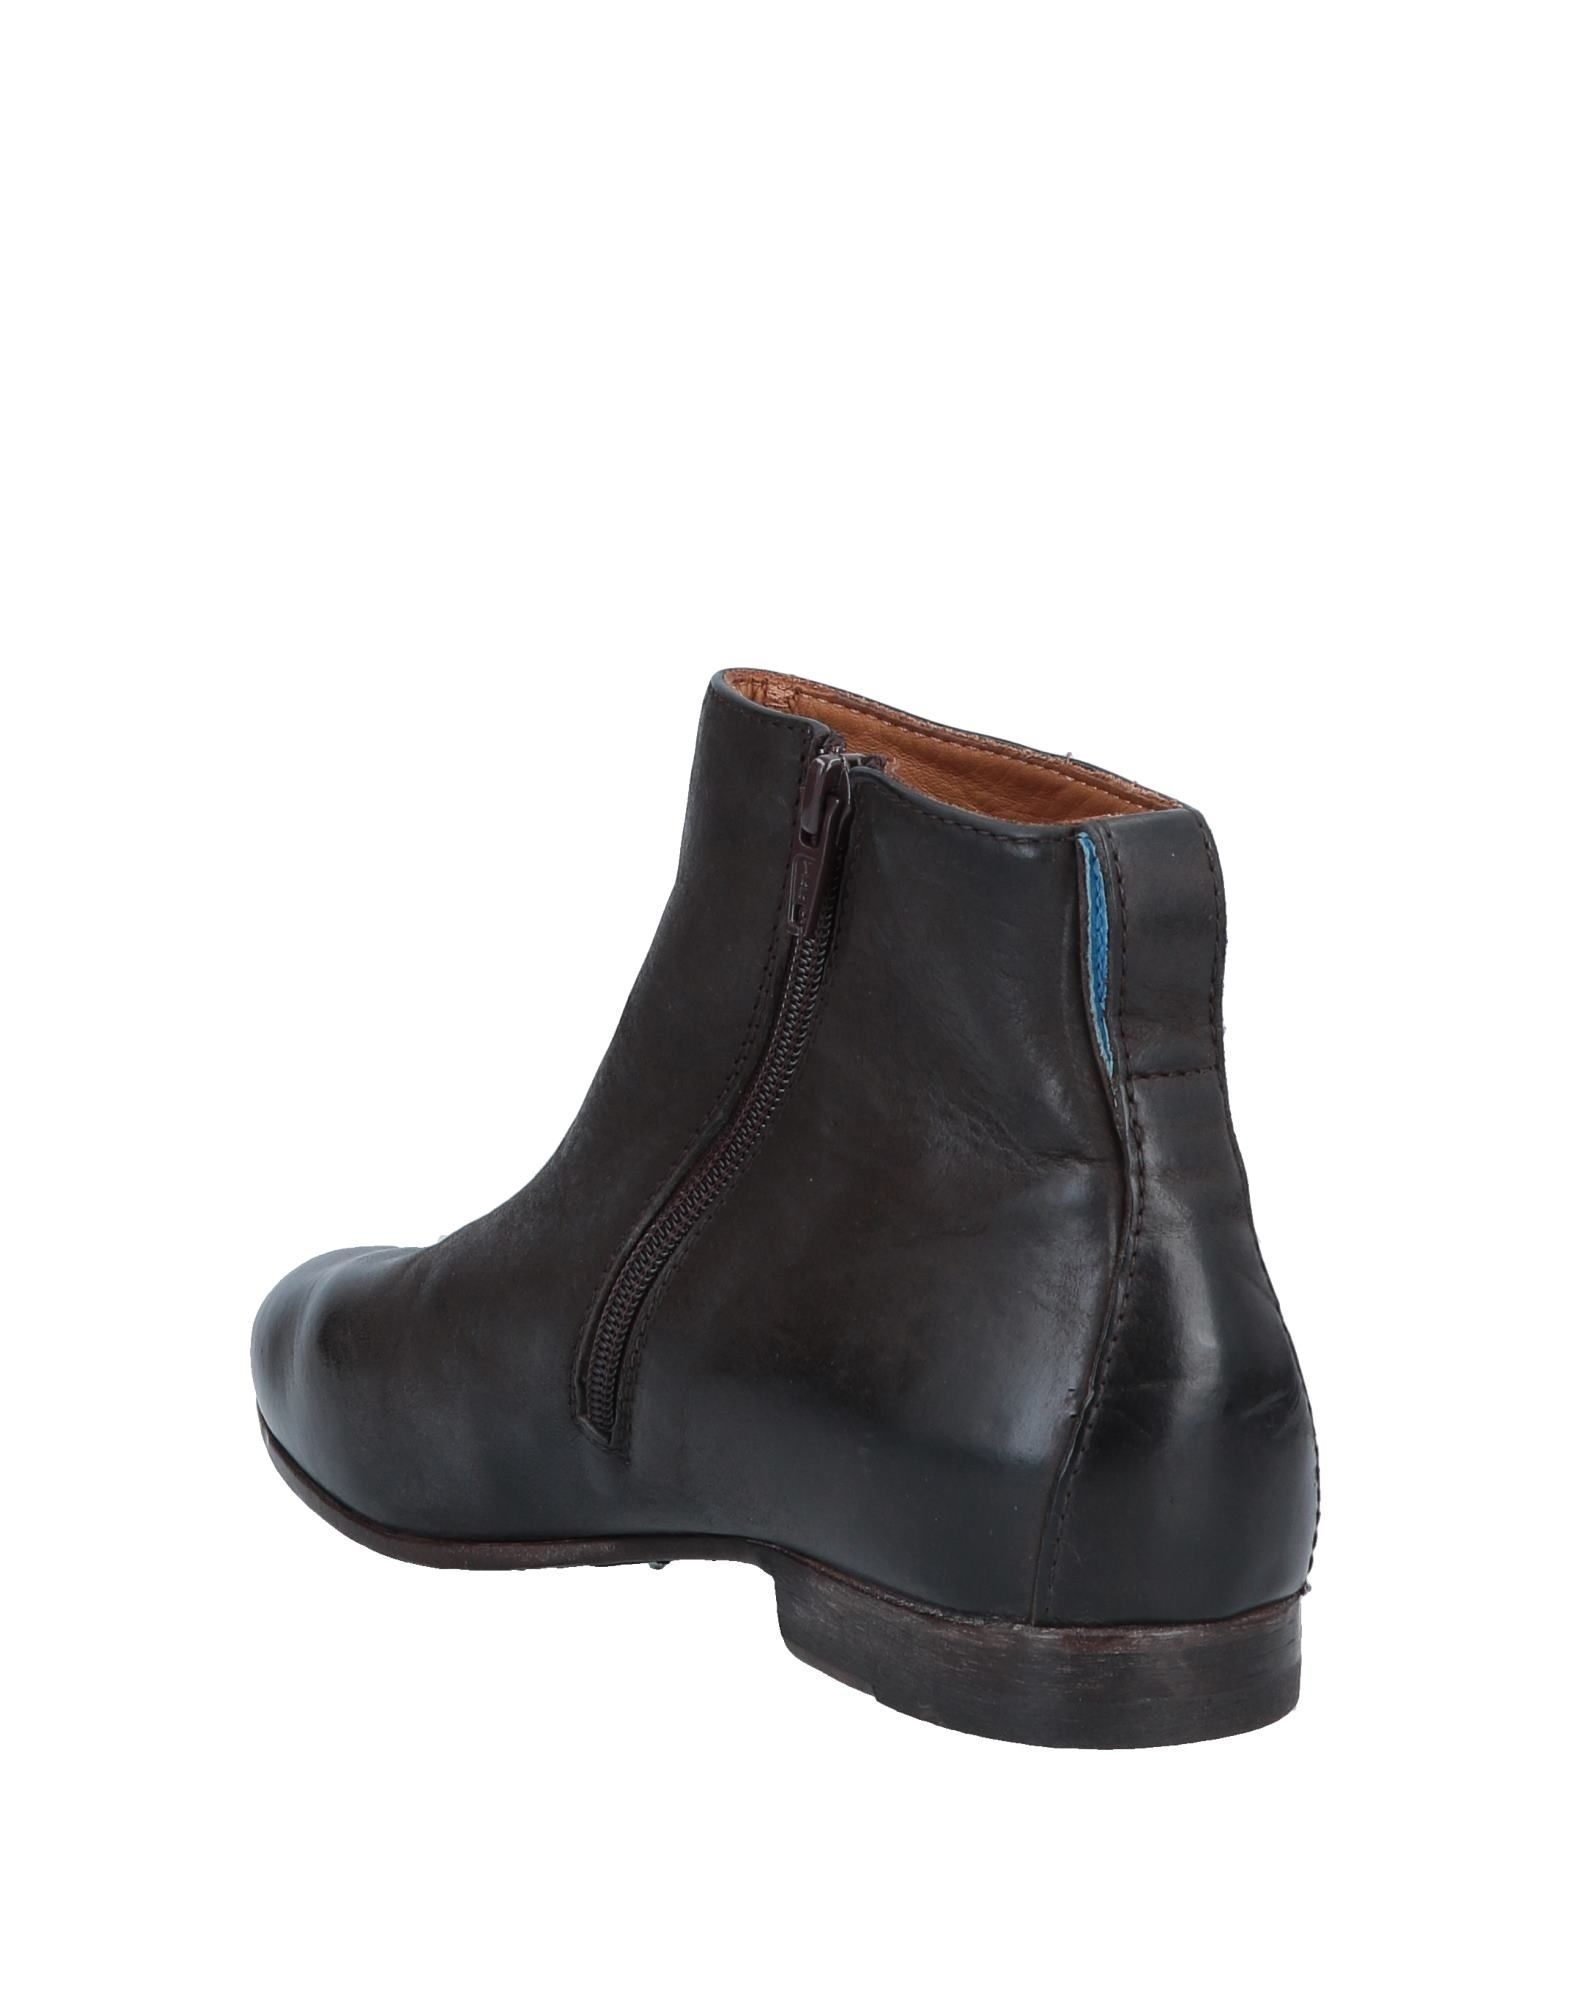 Moma Dark Brown Leather Ankle Boots